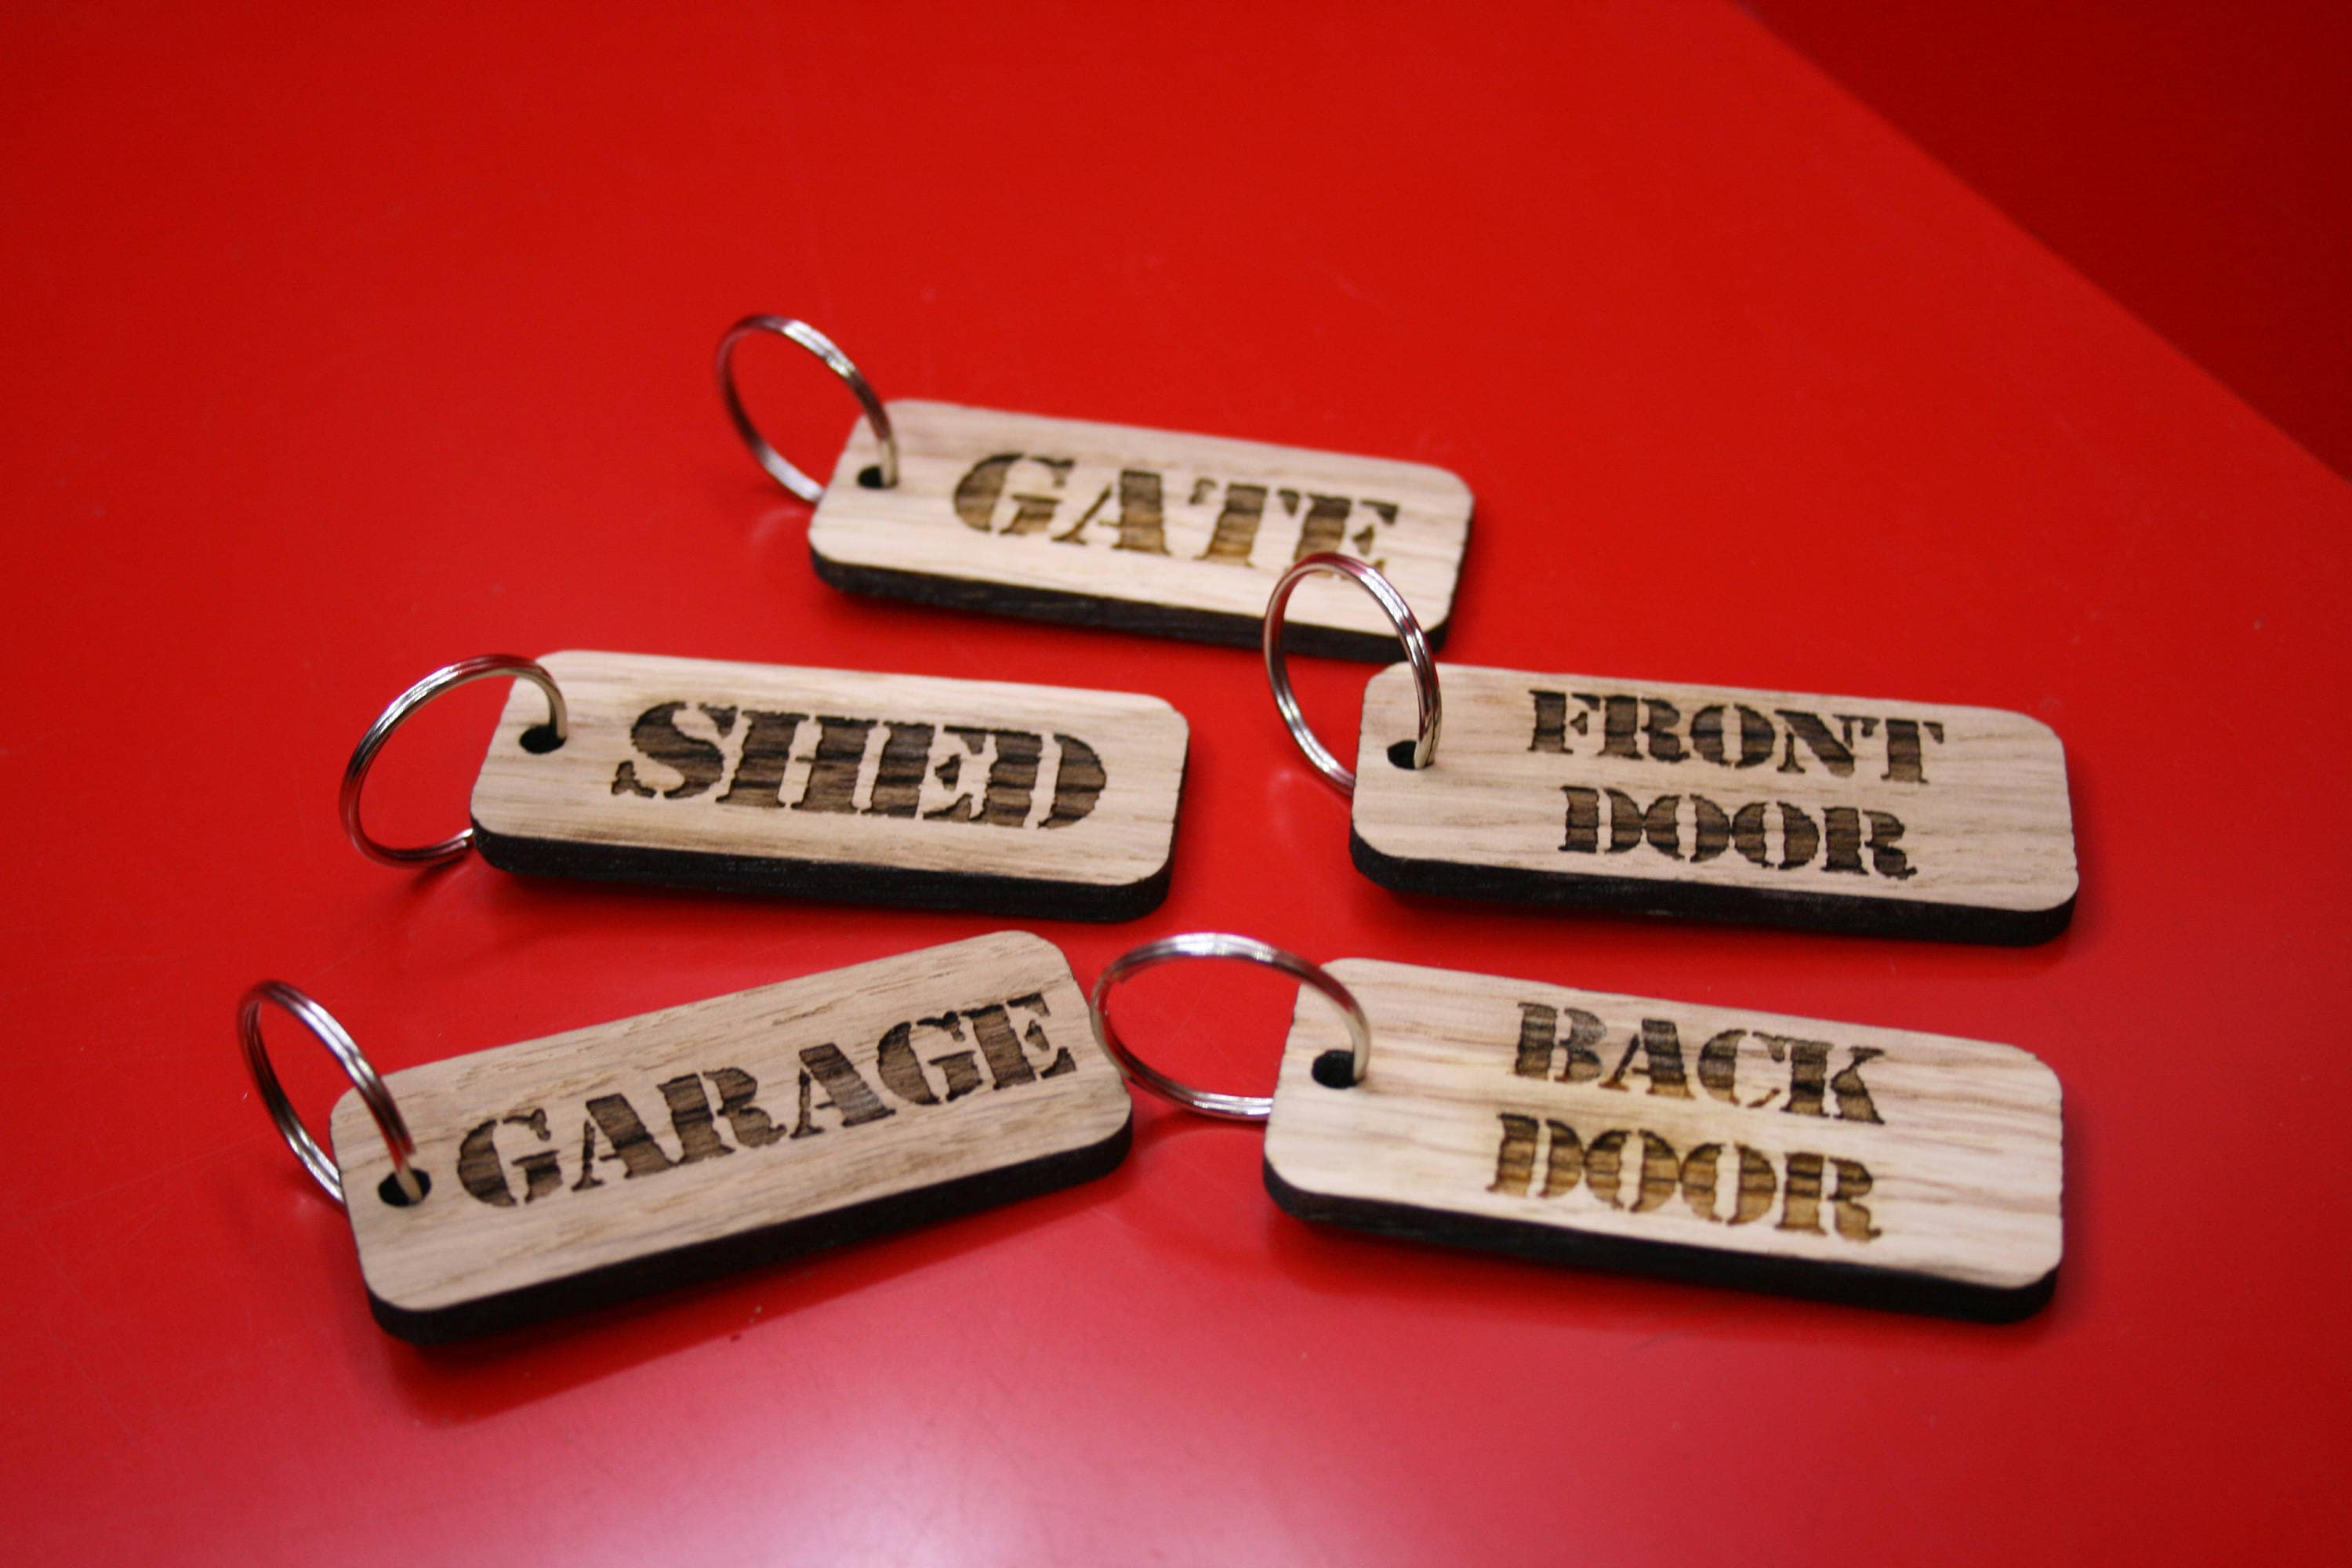 Laser Engraved Oak Keyrings With Nickel Ring Shed Garage Gate Back Door Front Door